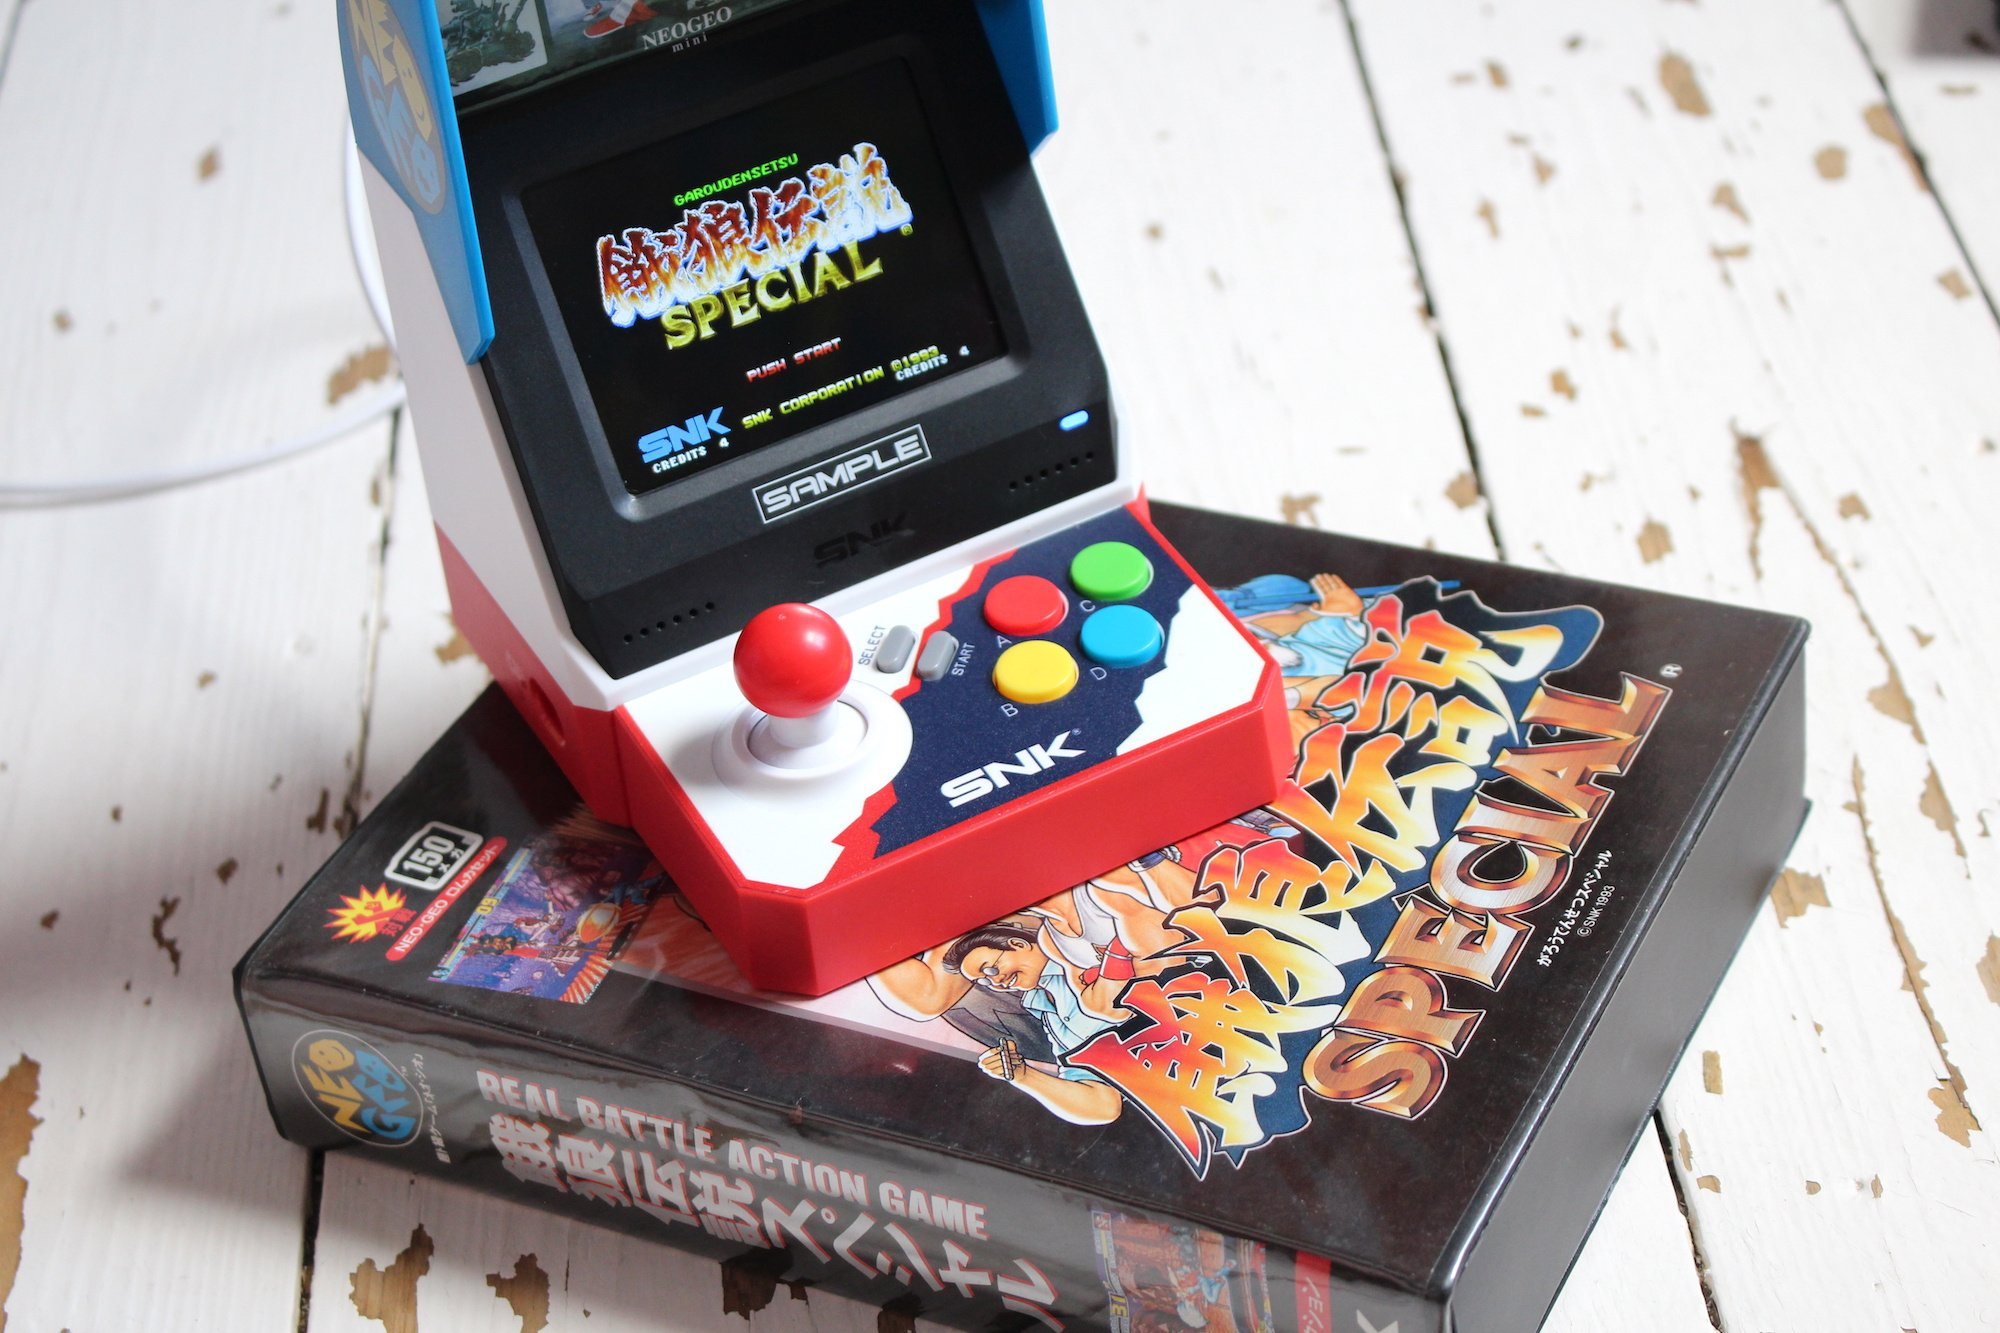 Hardware Review: Does The SNK Neo Geo Mini Outclass Nintendo's